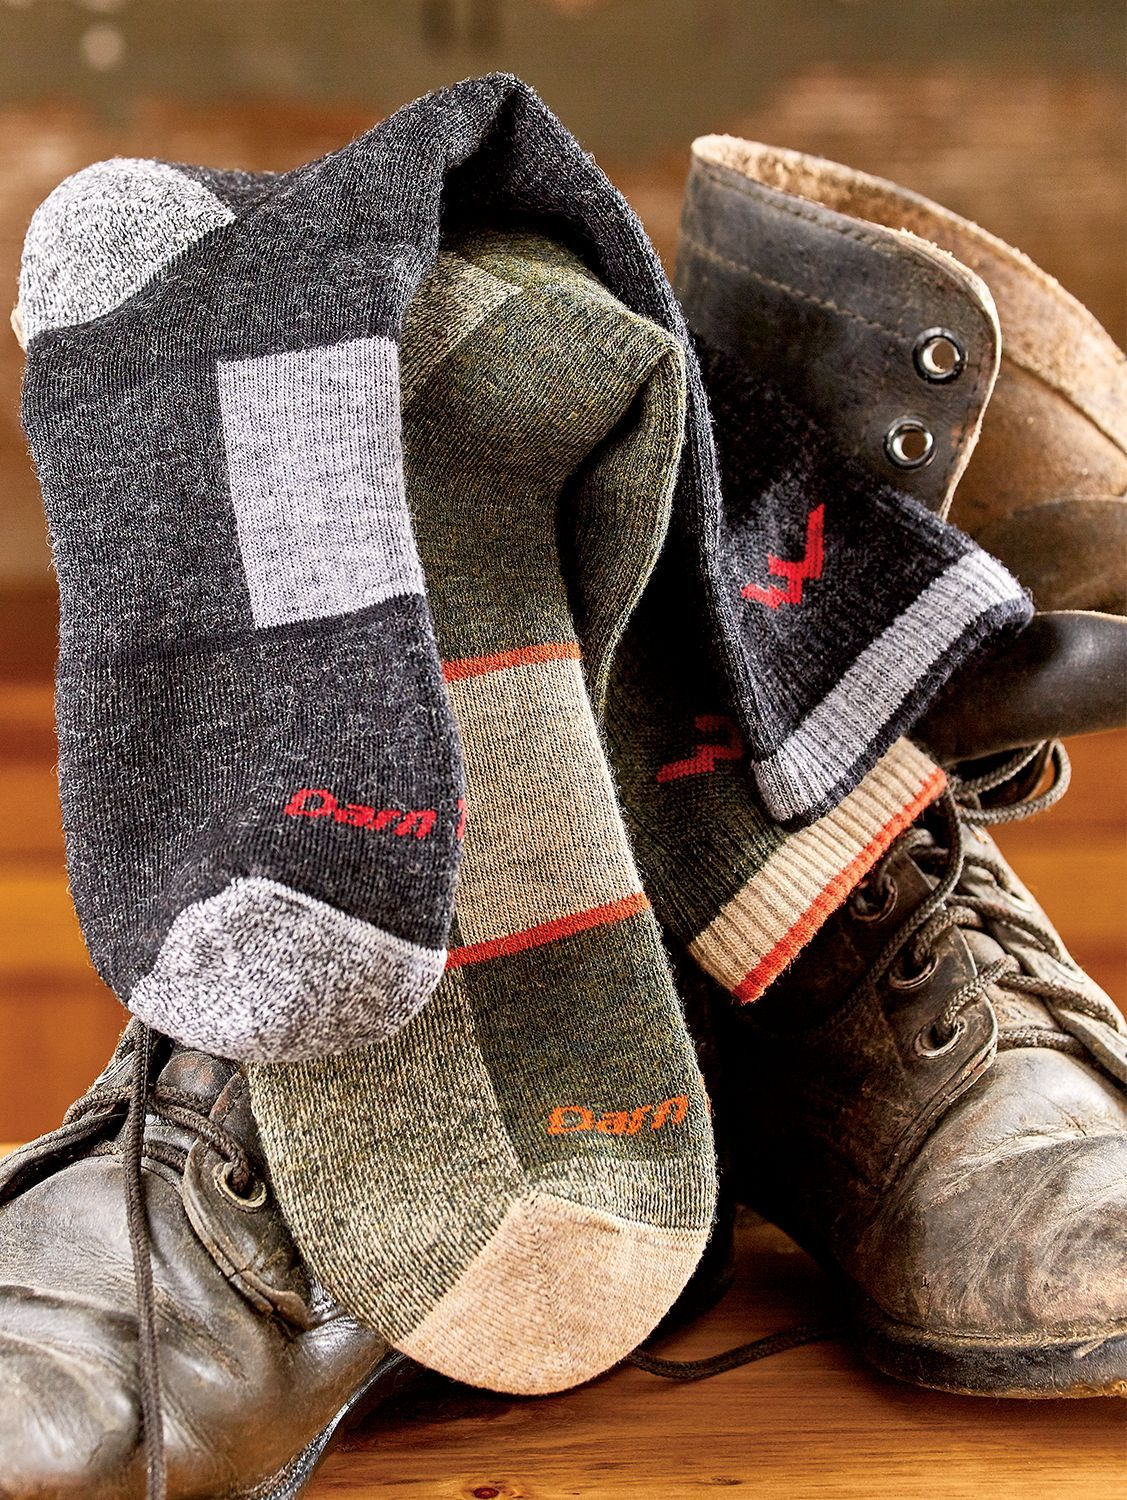 Darn tough boot socks with images boot socks boots